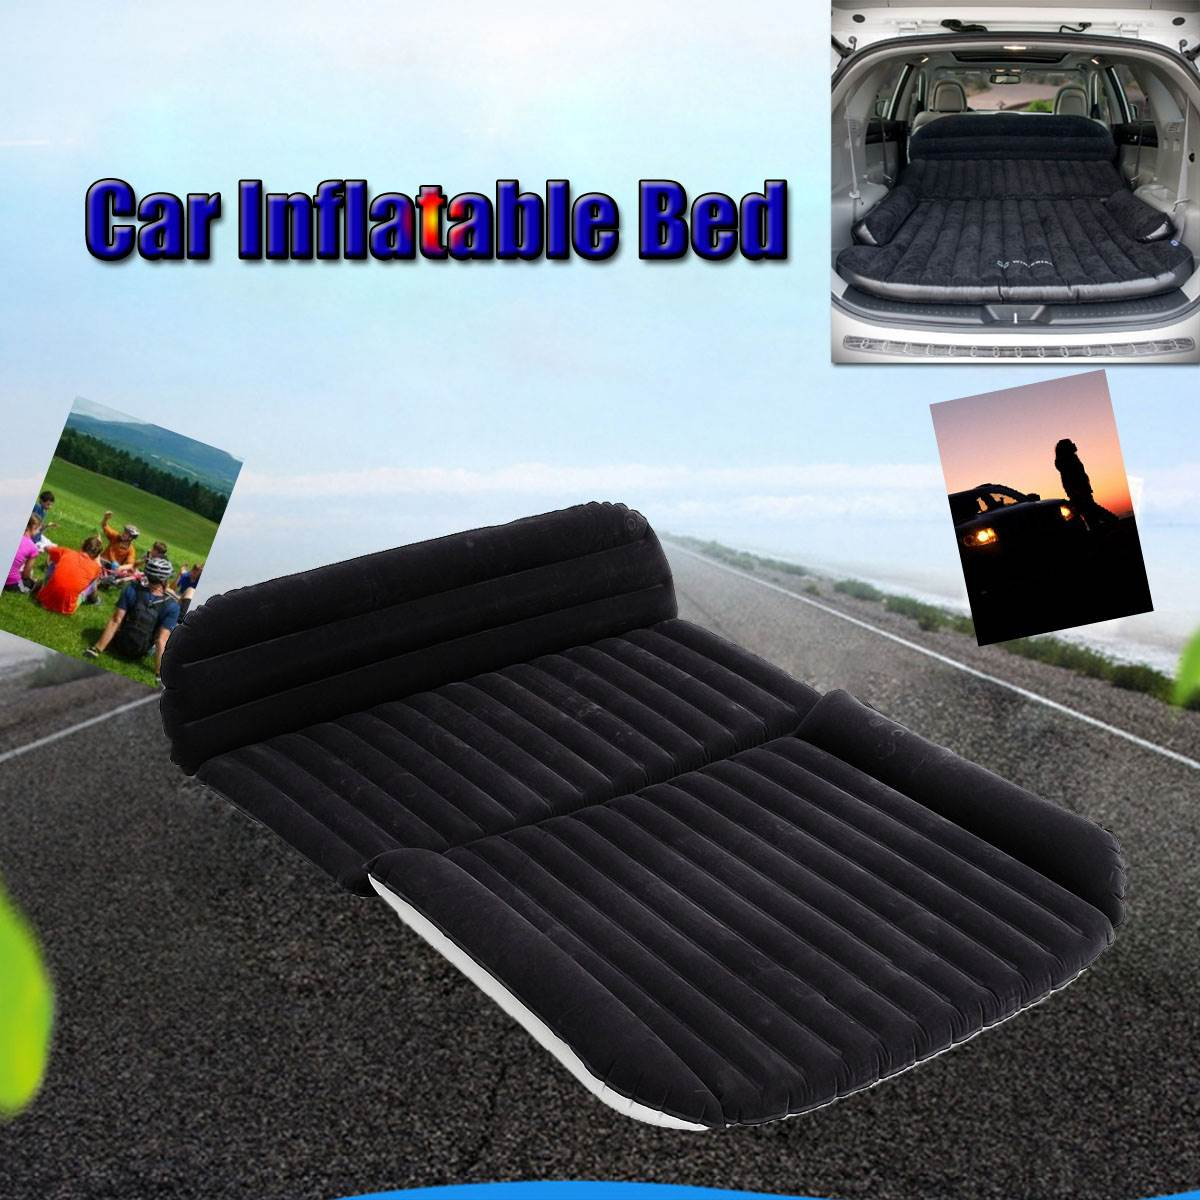 Universal Car Travel Inflatable Mattress Car Inflatable Bed Air Bed Cushion Outdoor Travel Beds Sofa with Inflatable Pump betos car air mattress travel bed auto back seat cover inflatable mattress air bed good quality inflatable car bed for camping